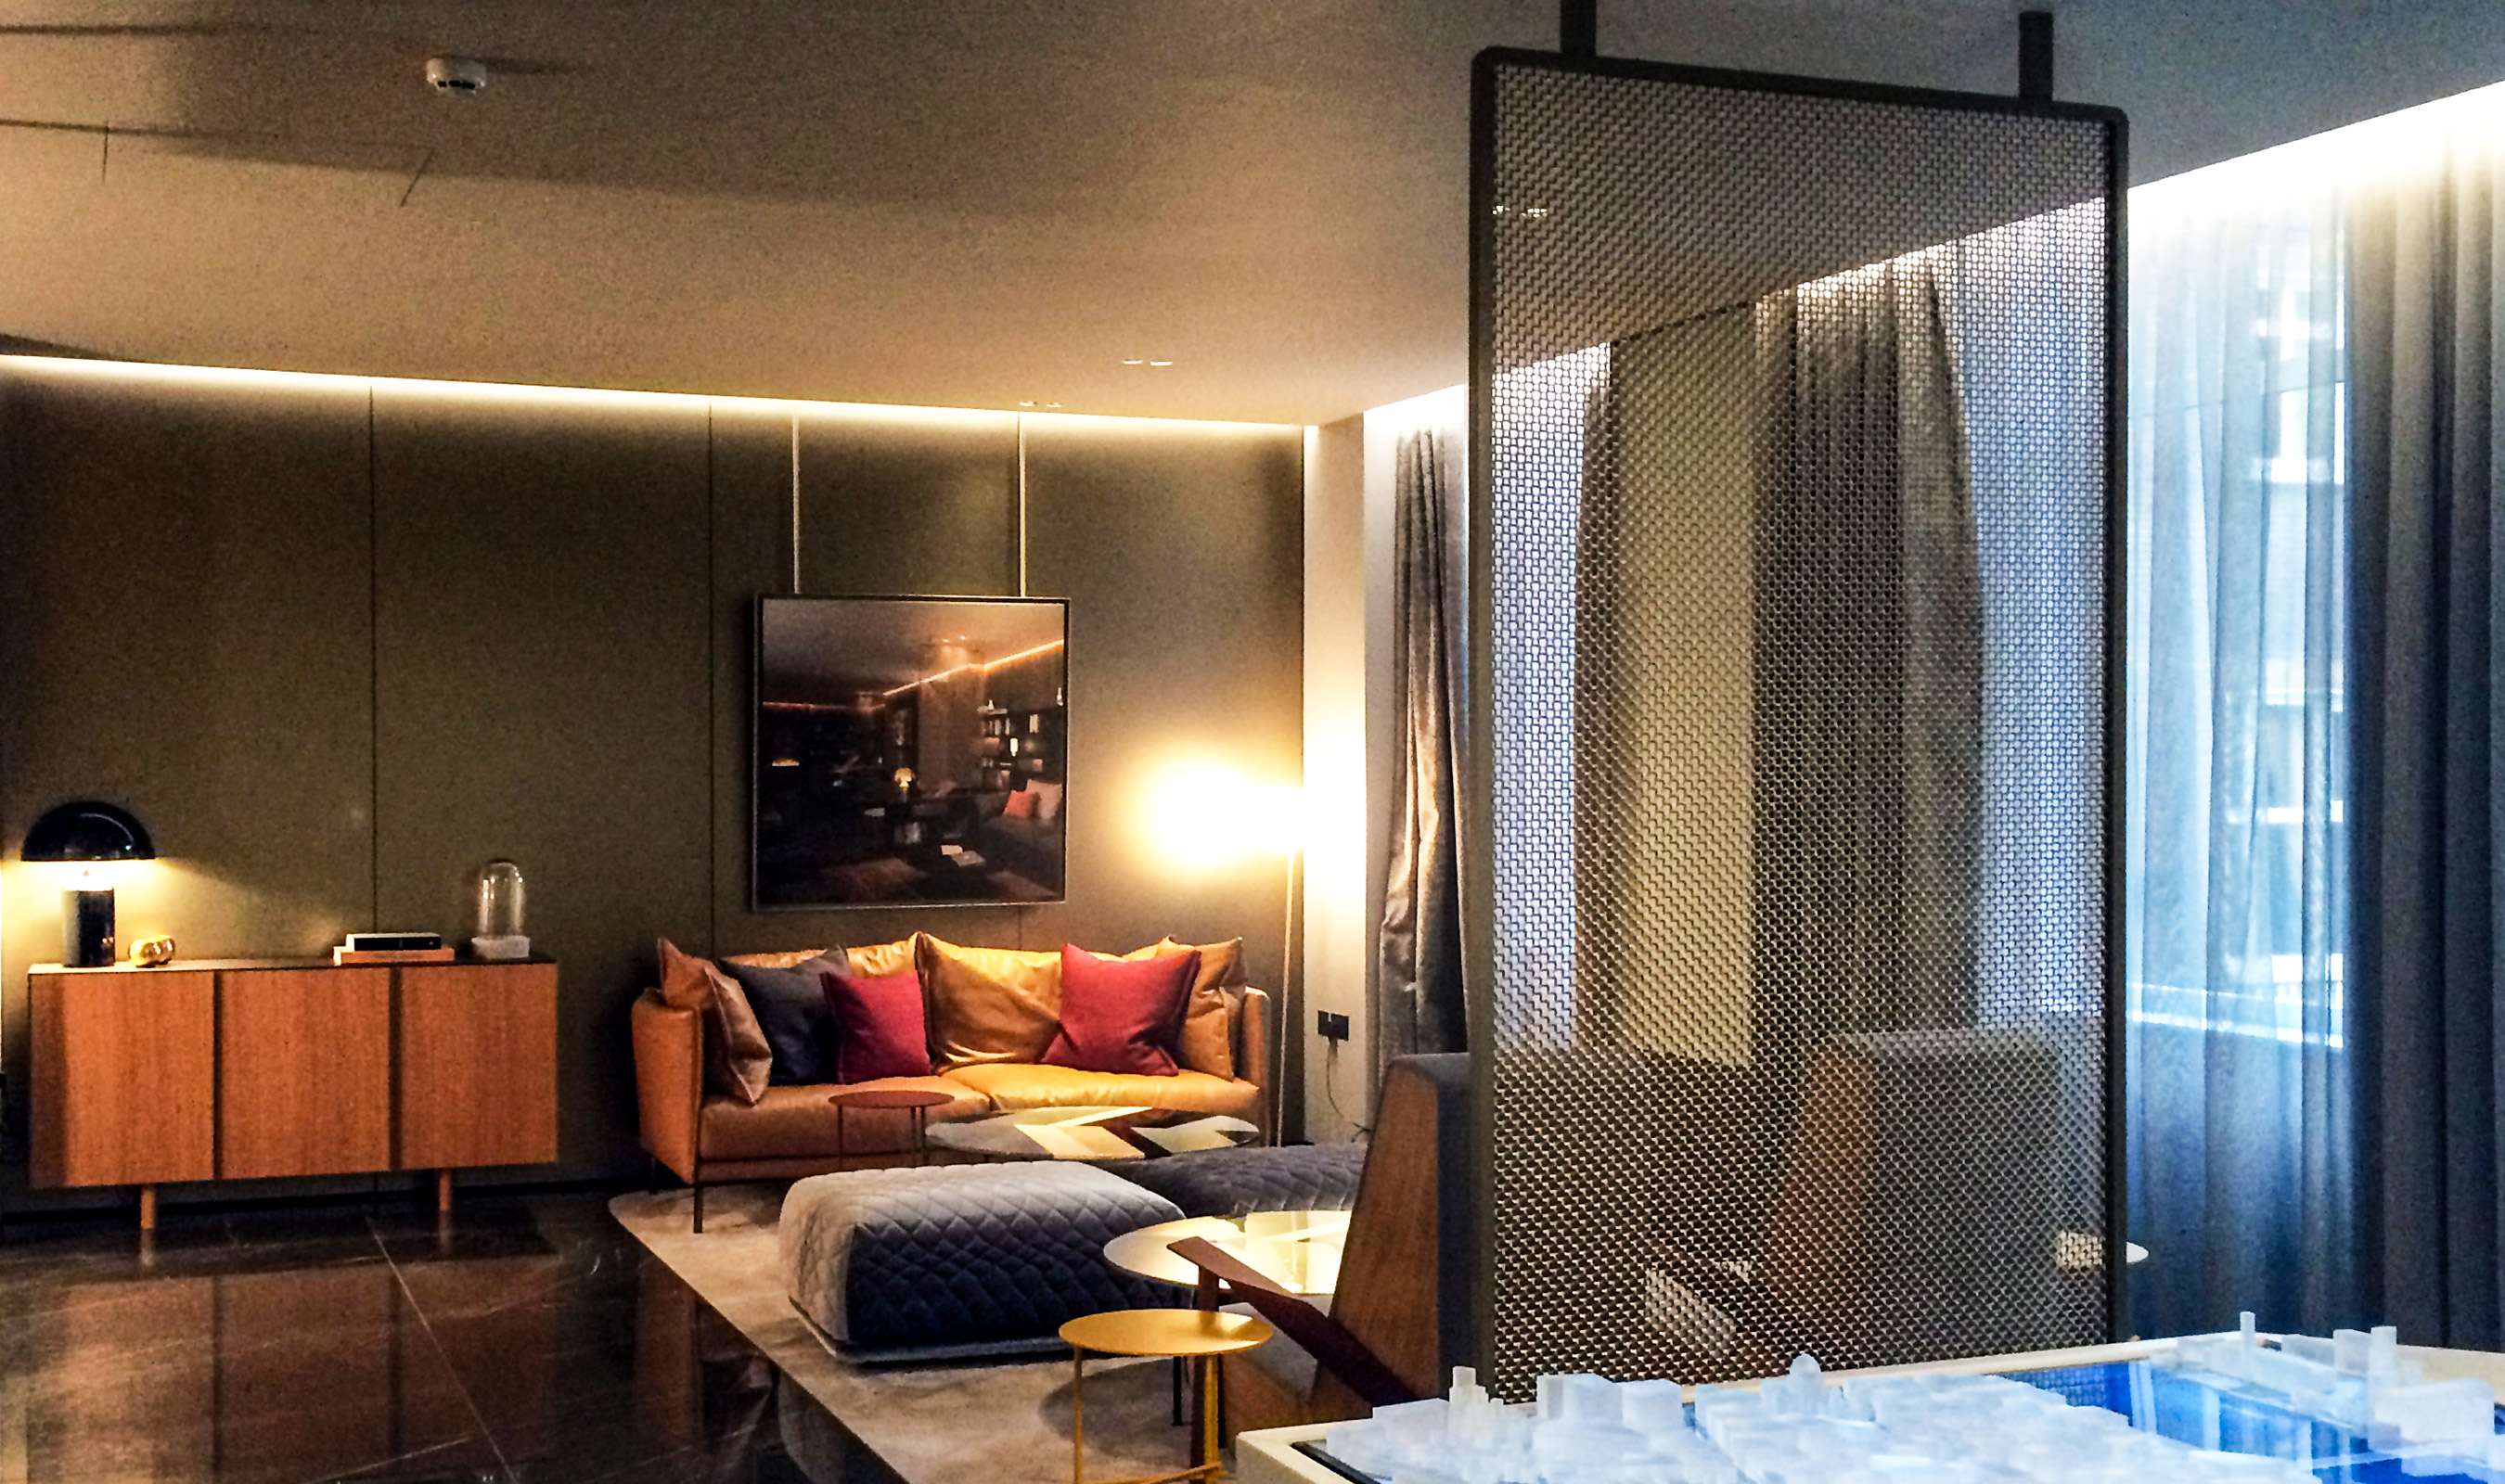 The softer lines of M22-83 is a stunning wire mesh choice in this room.